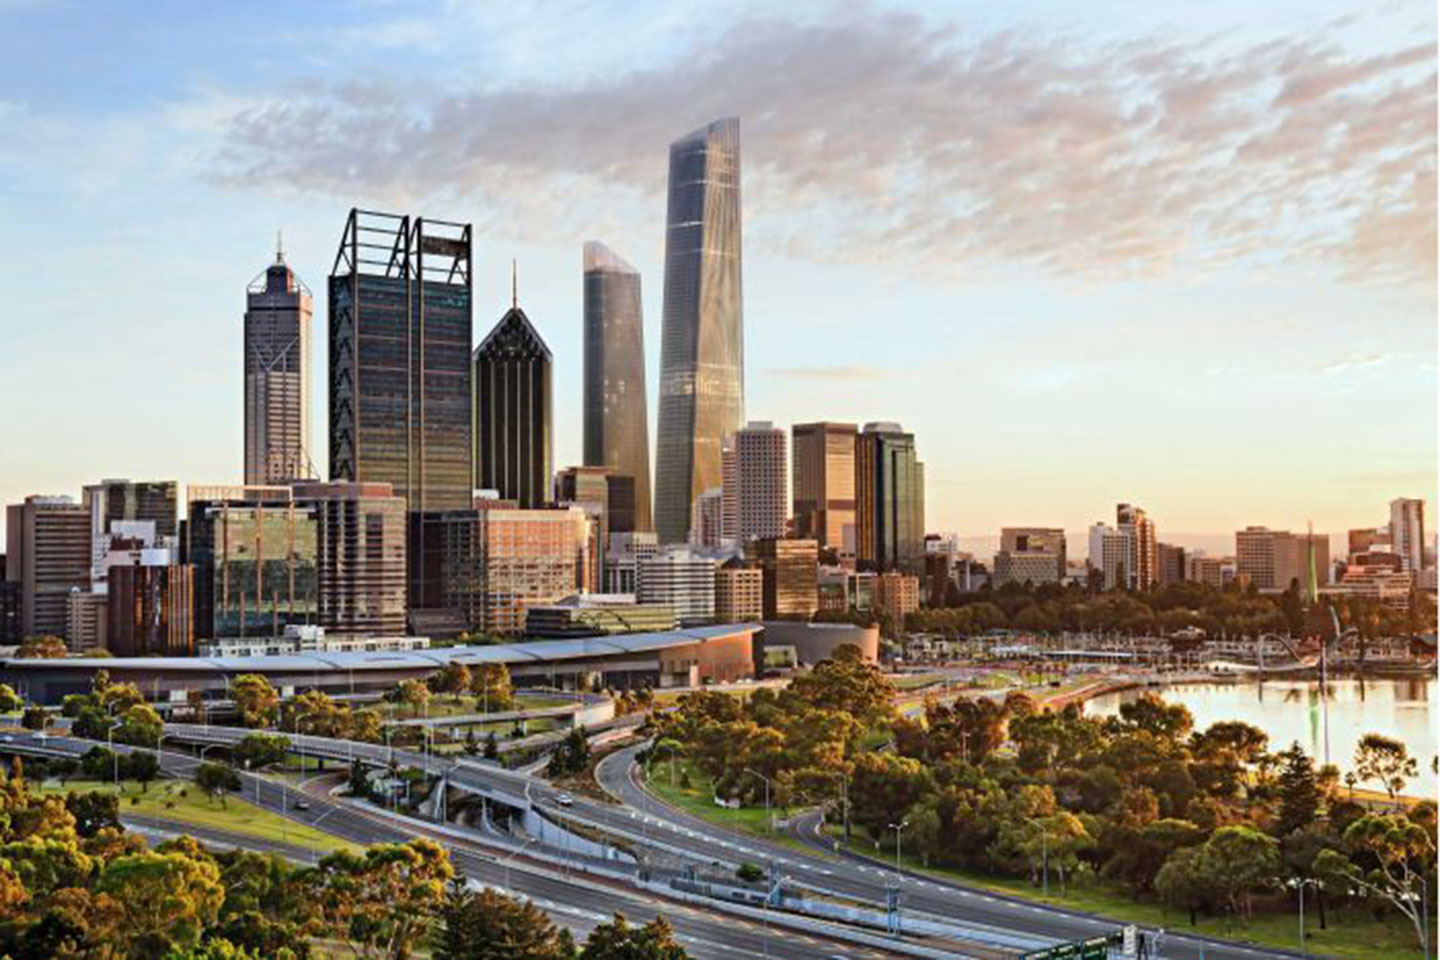 World trade centre proposal for perth business news for Landscape architecture courses perth